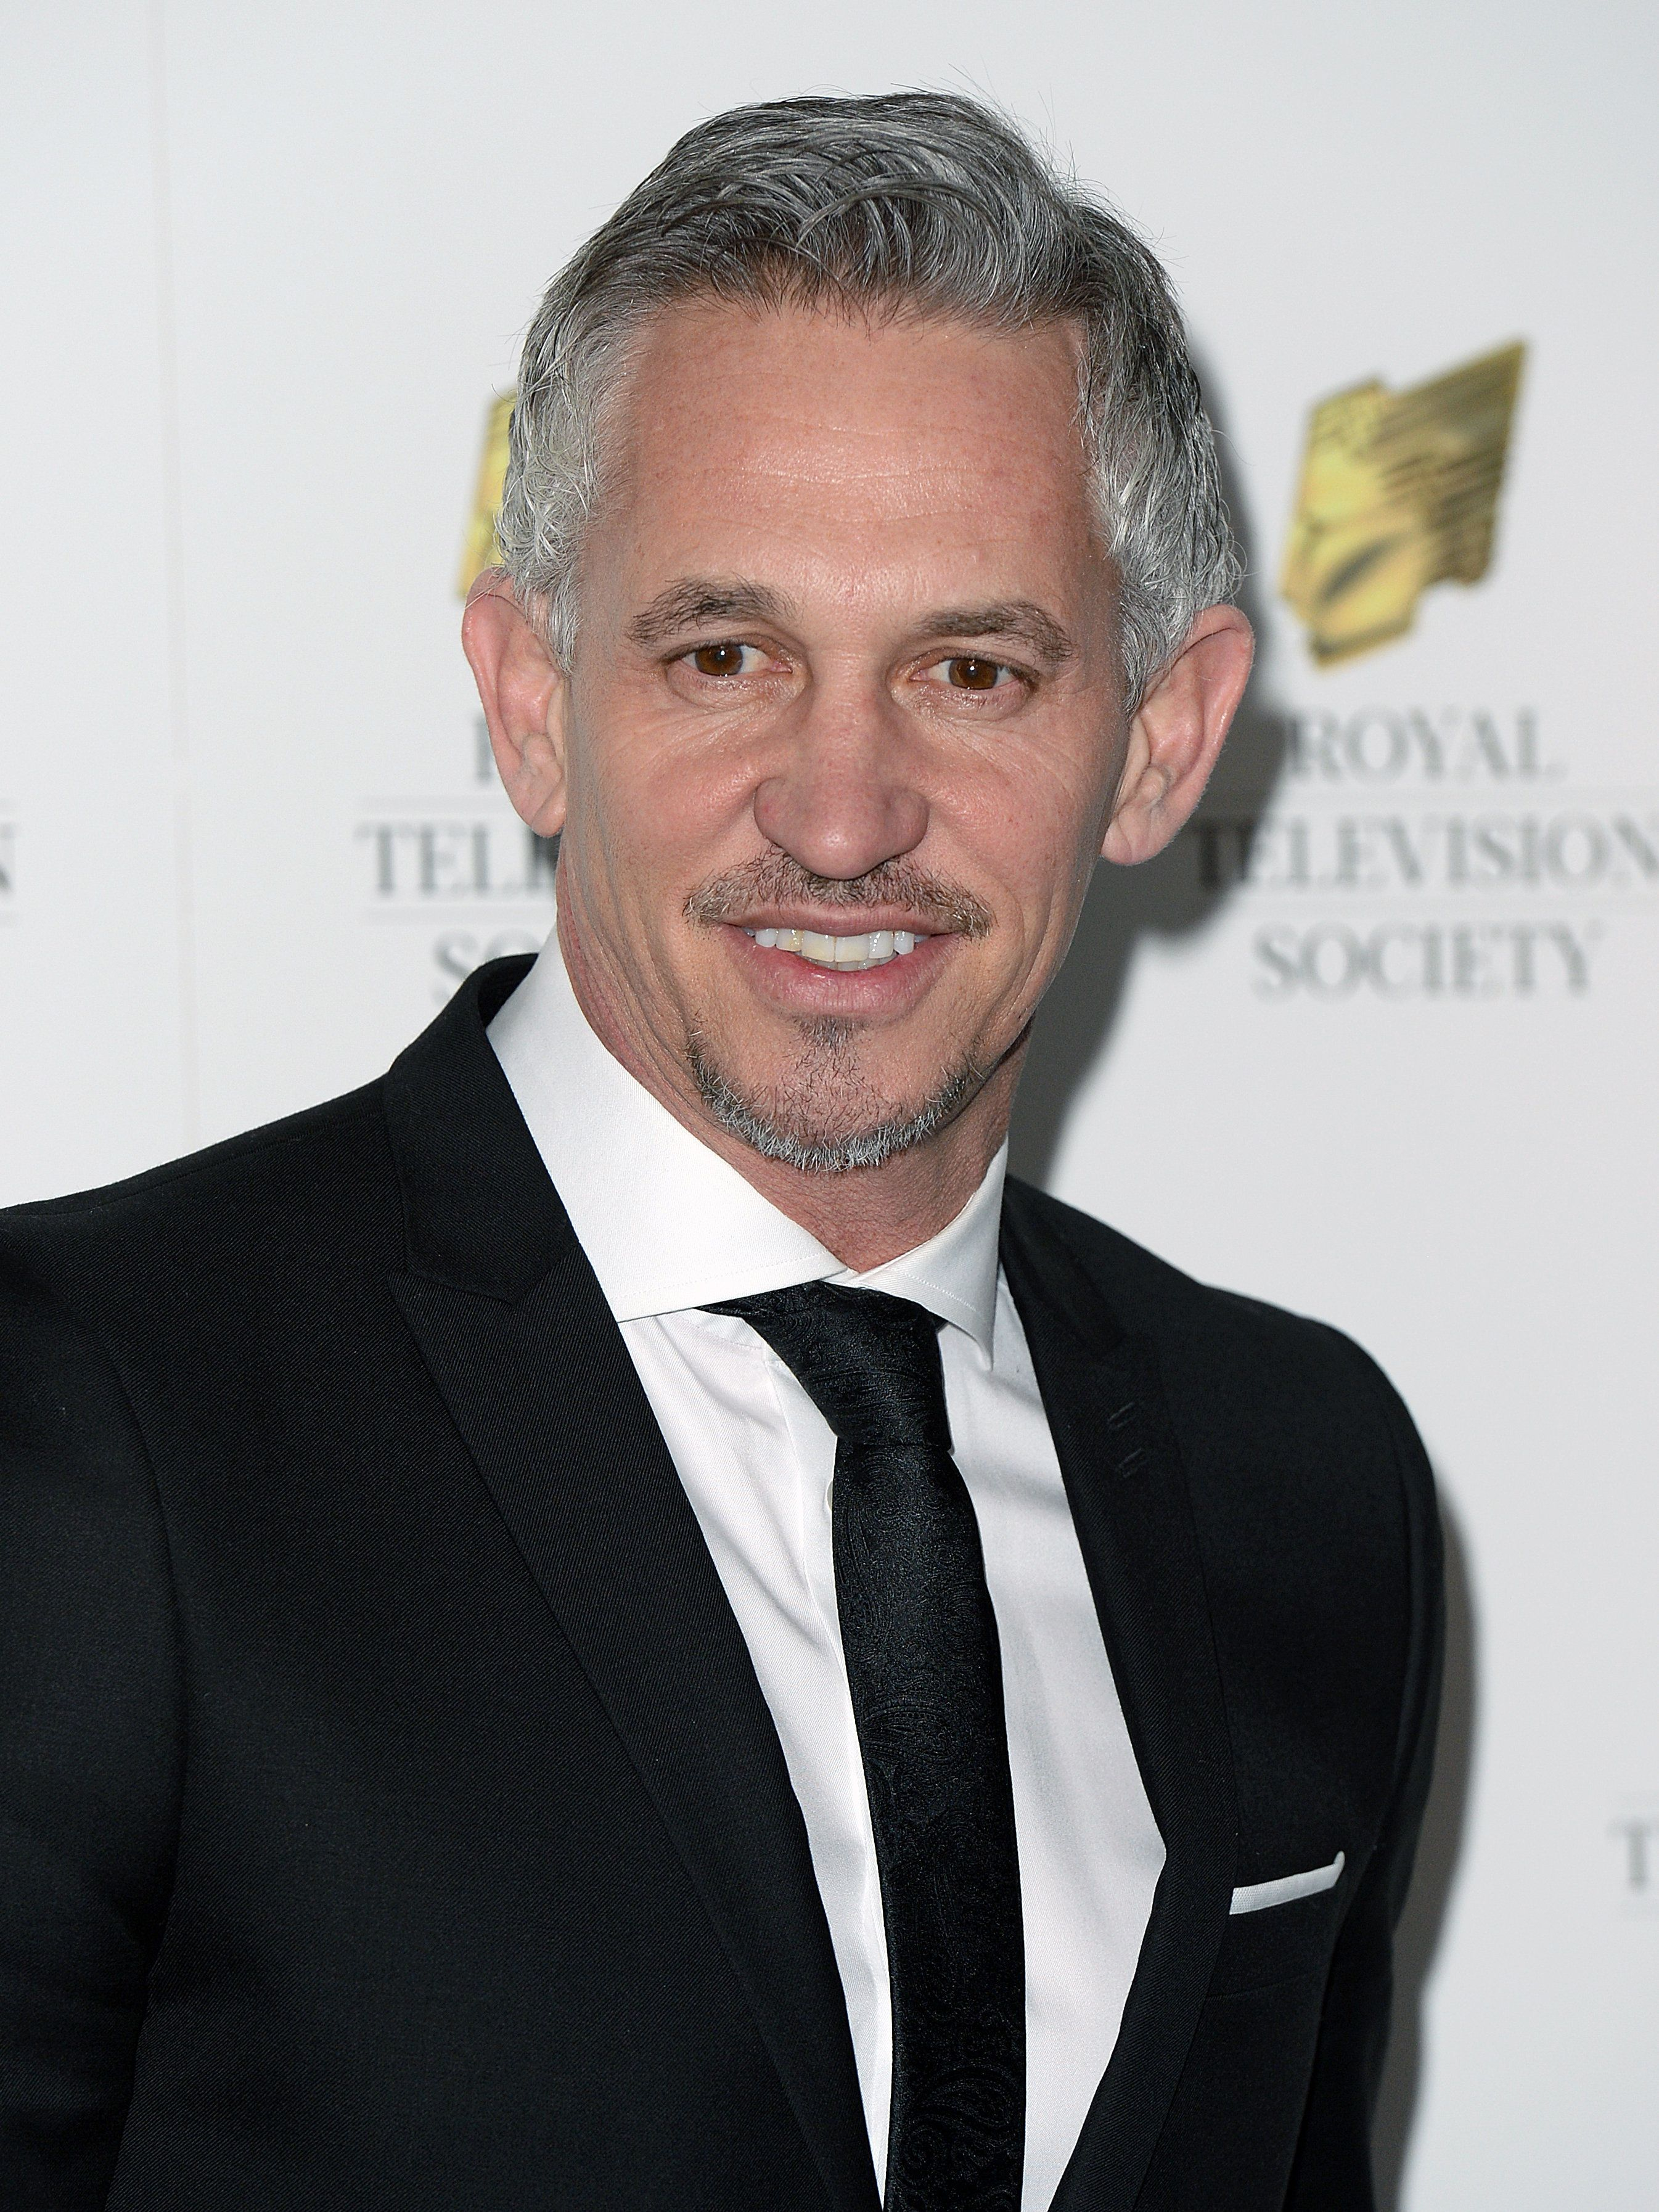 Gary Lineker Voices 'Total And Utter Support' For BBC Female Stars Amid Gender Pay Gap